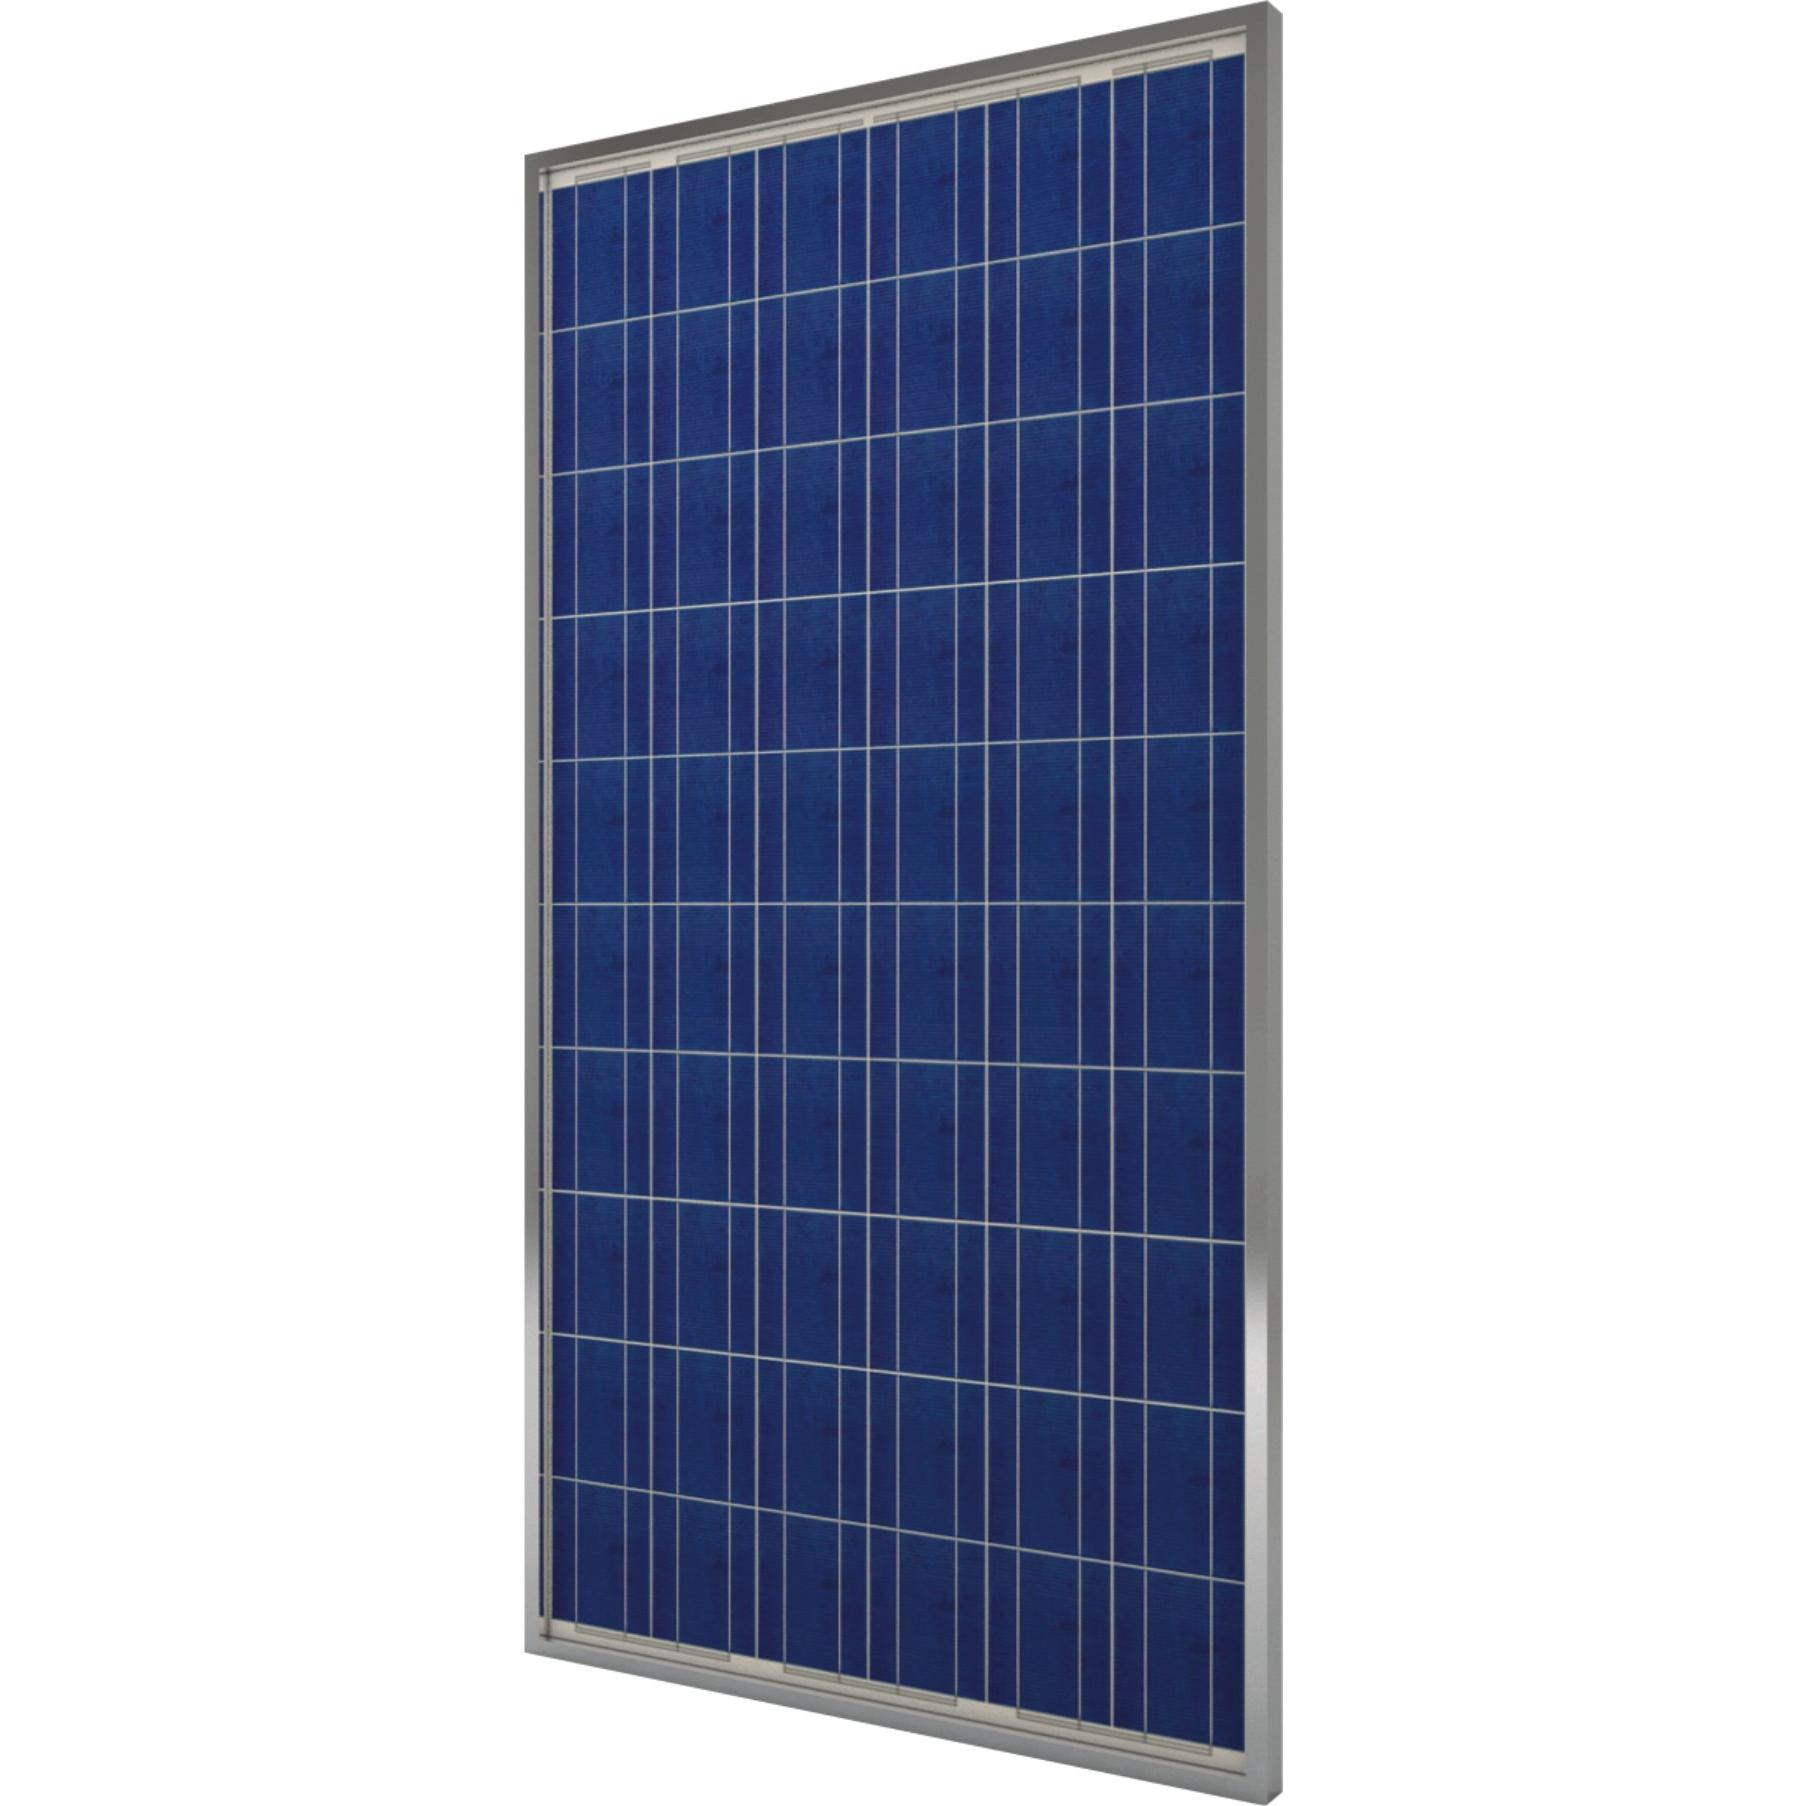 polycrystalline photovoltaic modules 250 wp producer of. Black Bedroom Furniture Sets. Home Design Ideas